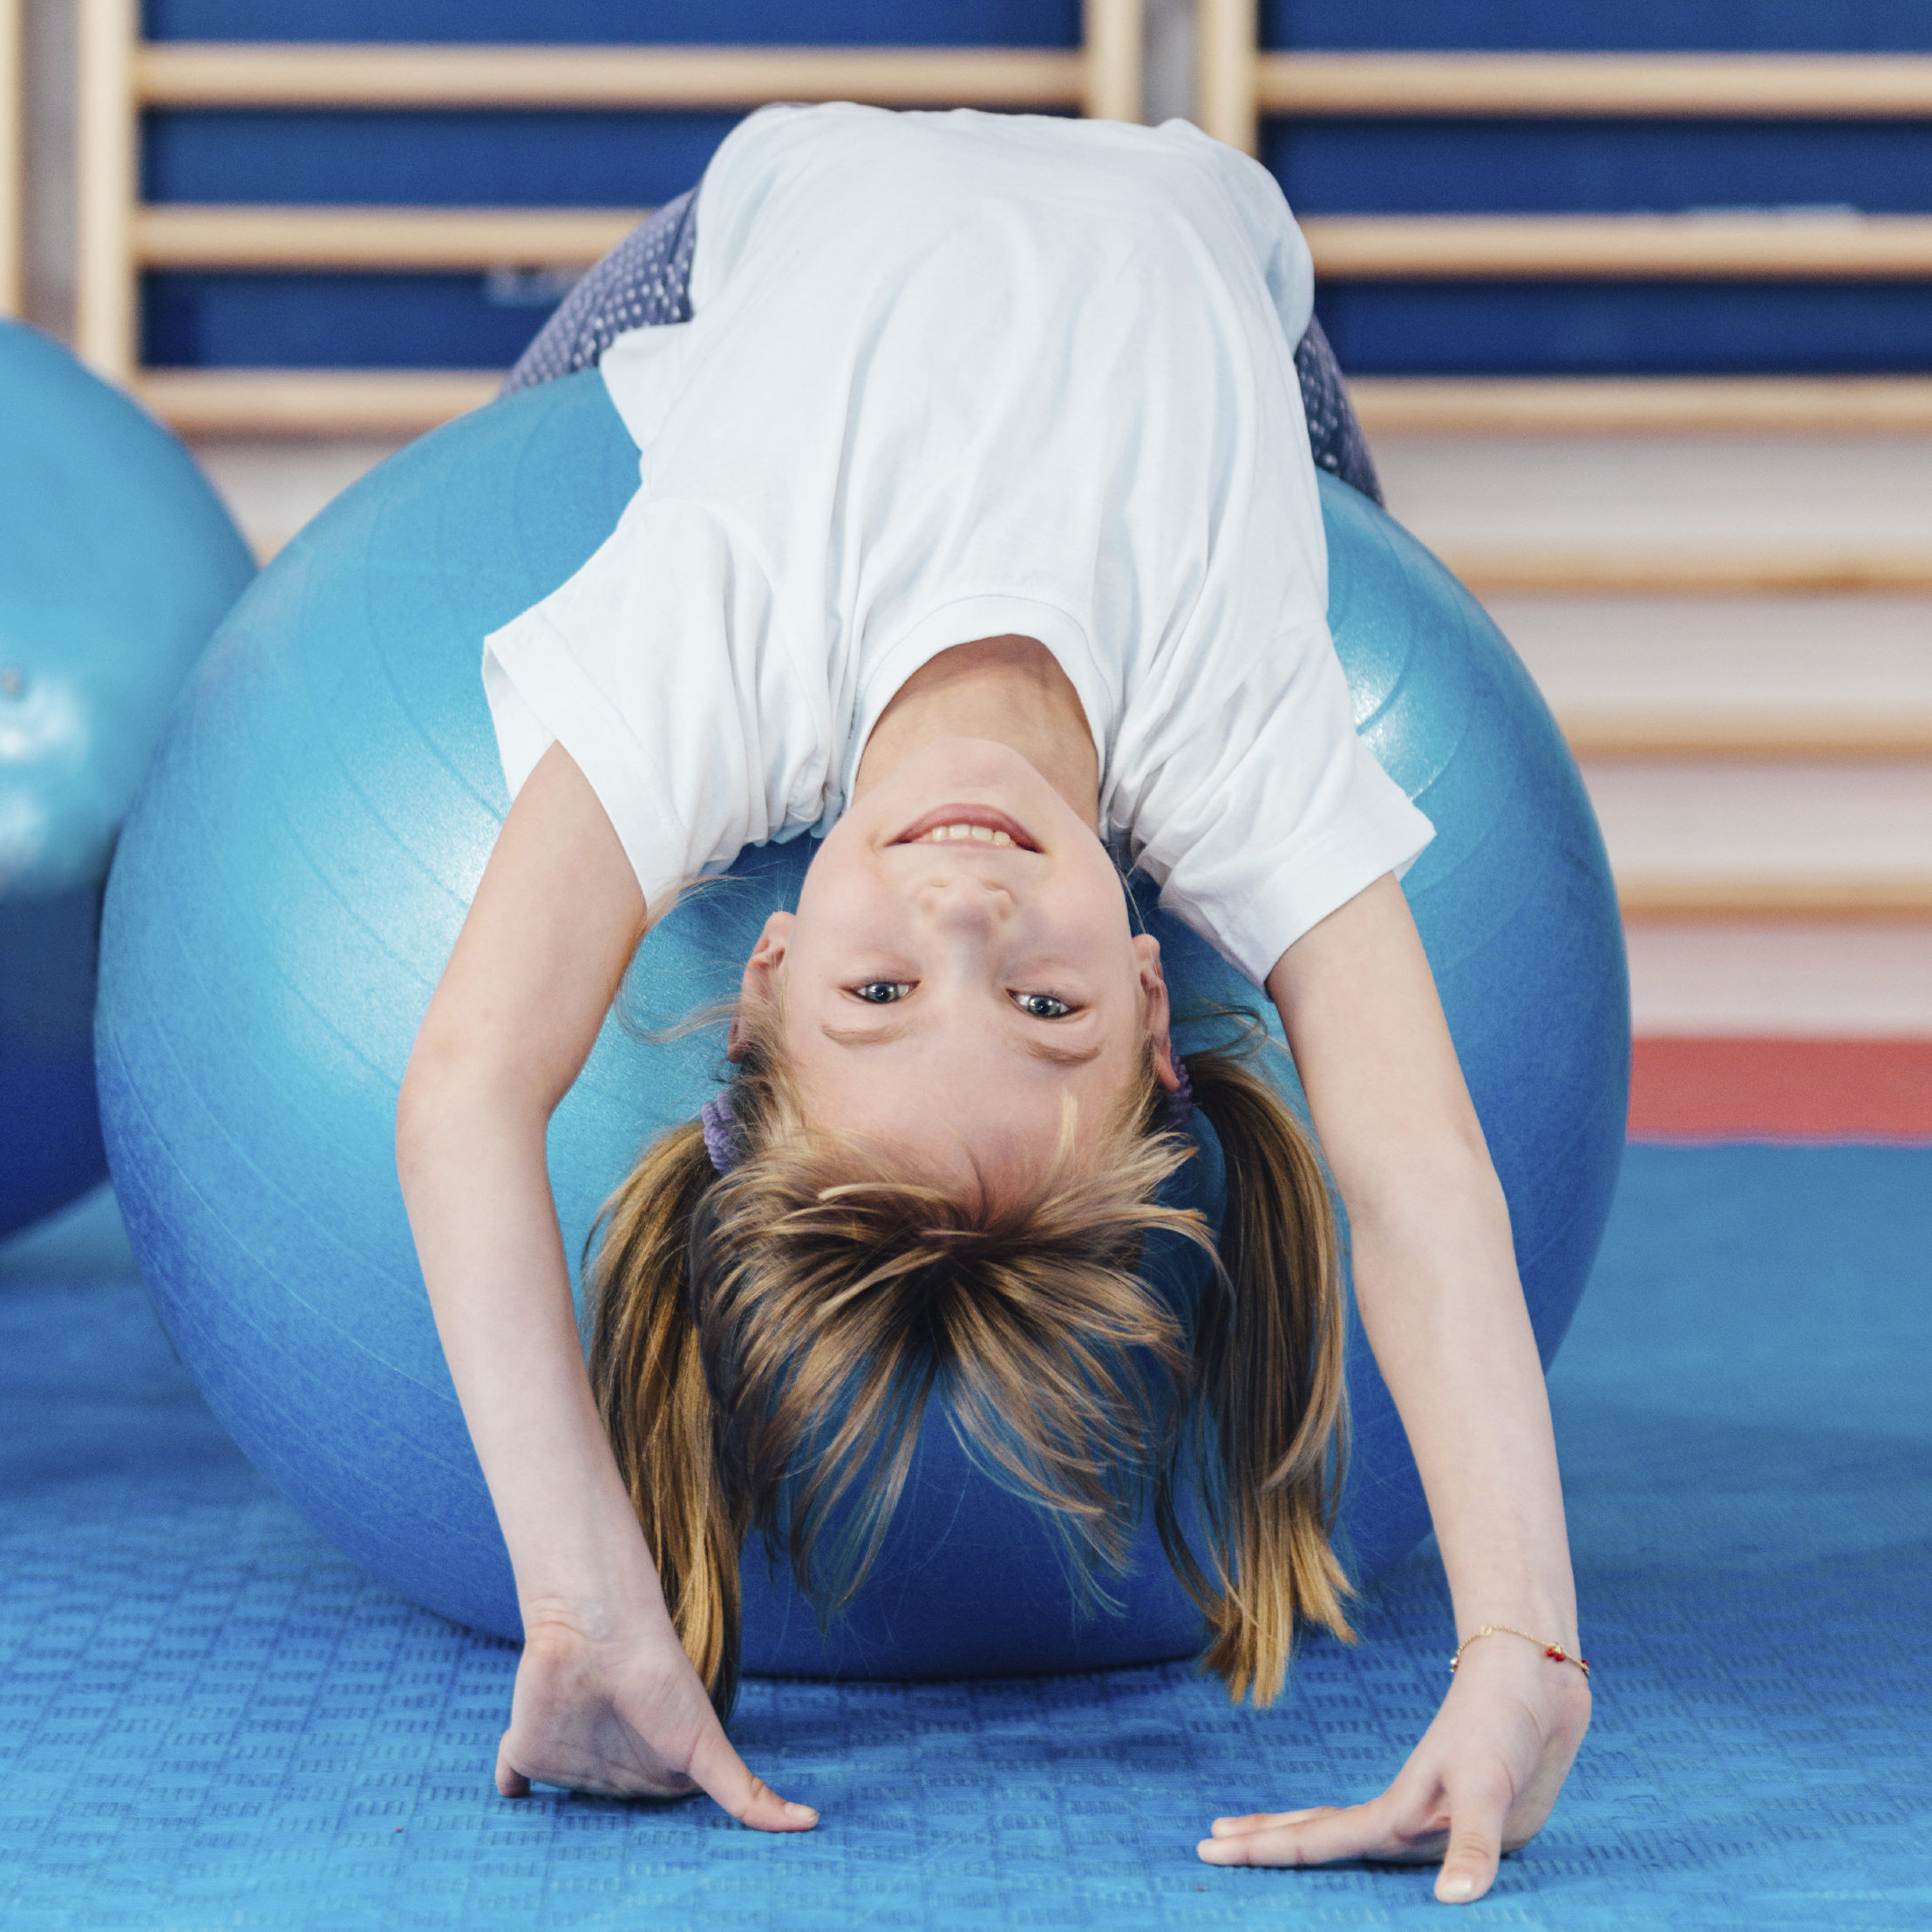 Cute girl exercising on pilates ball